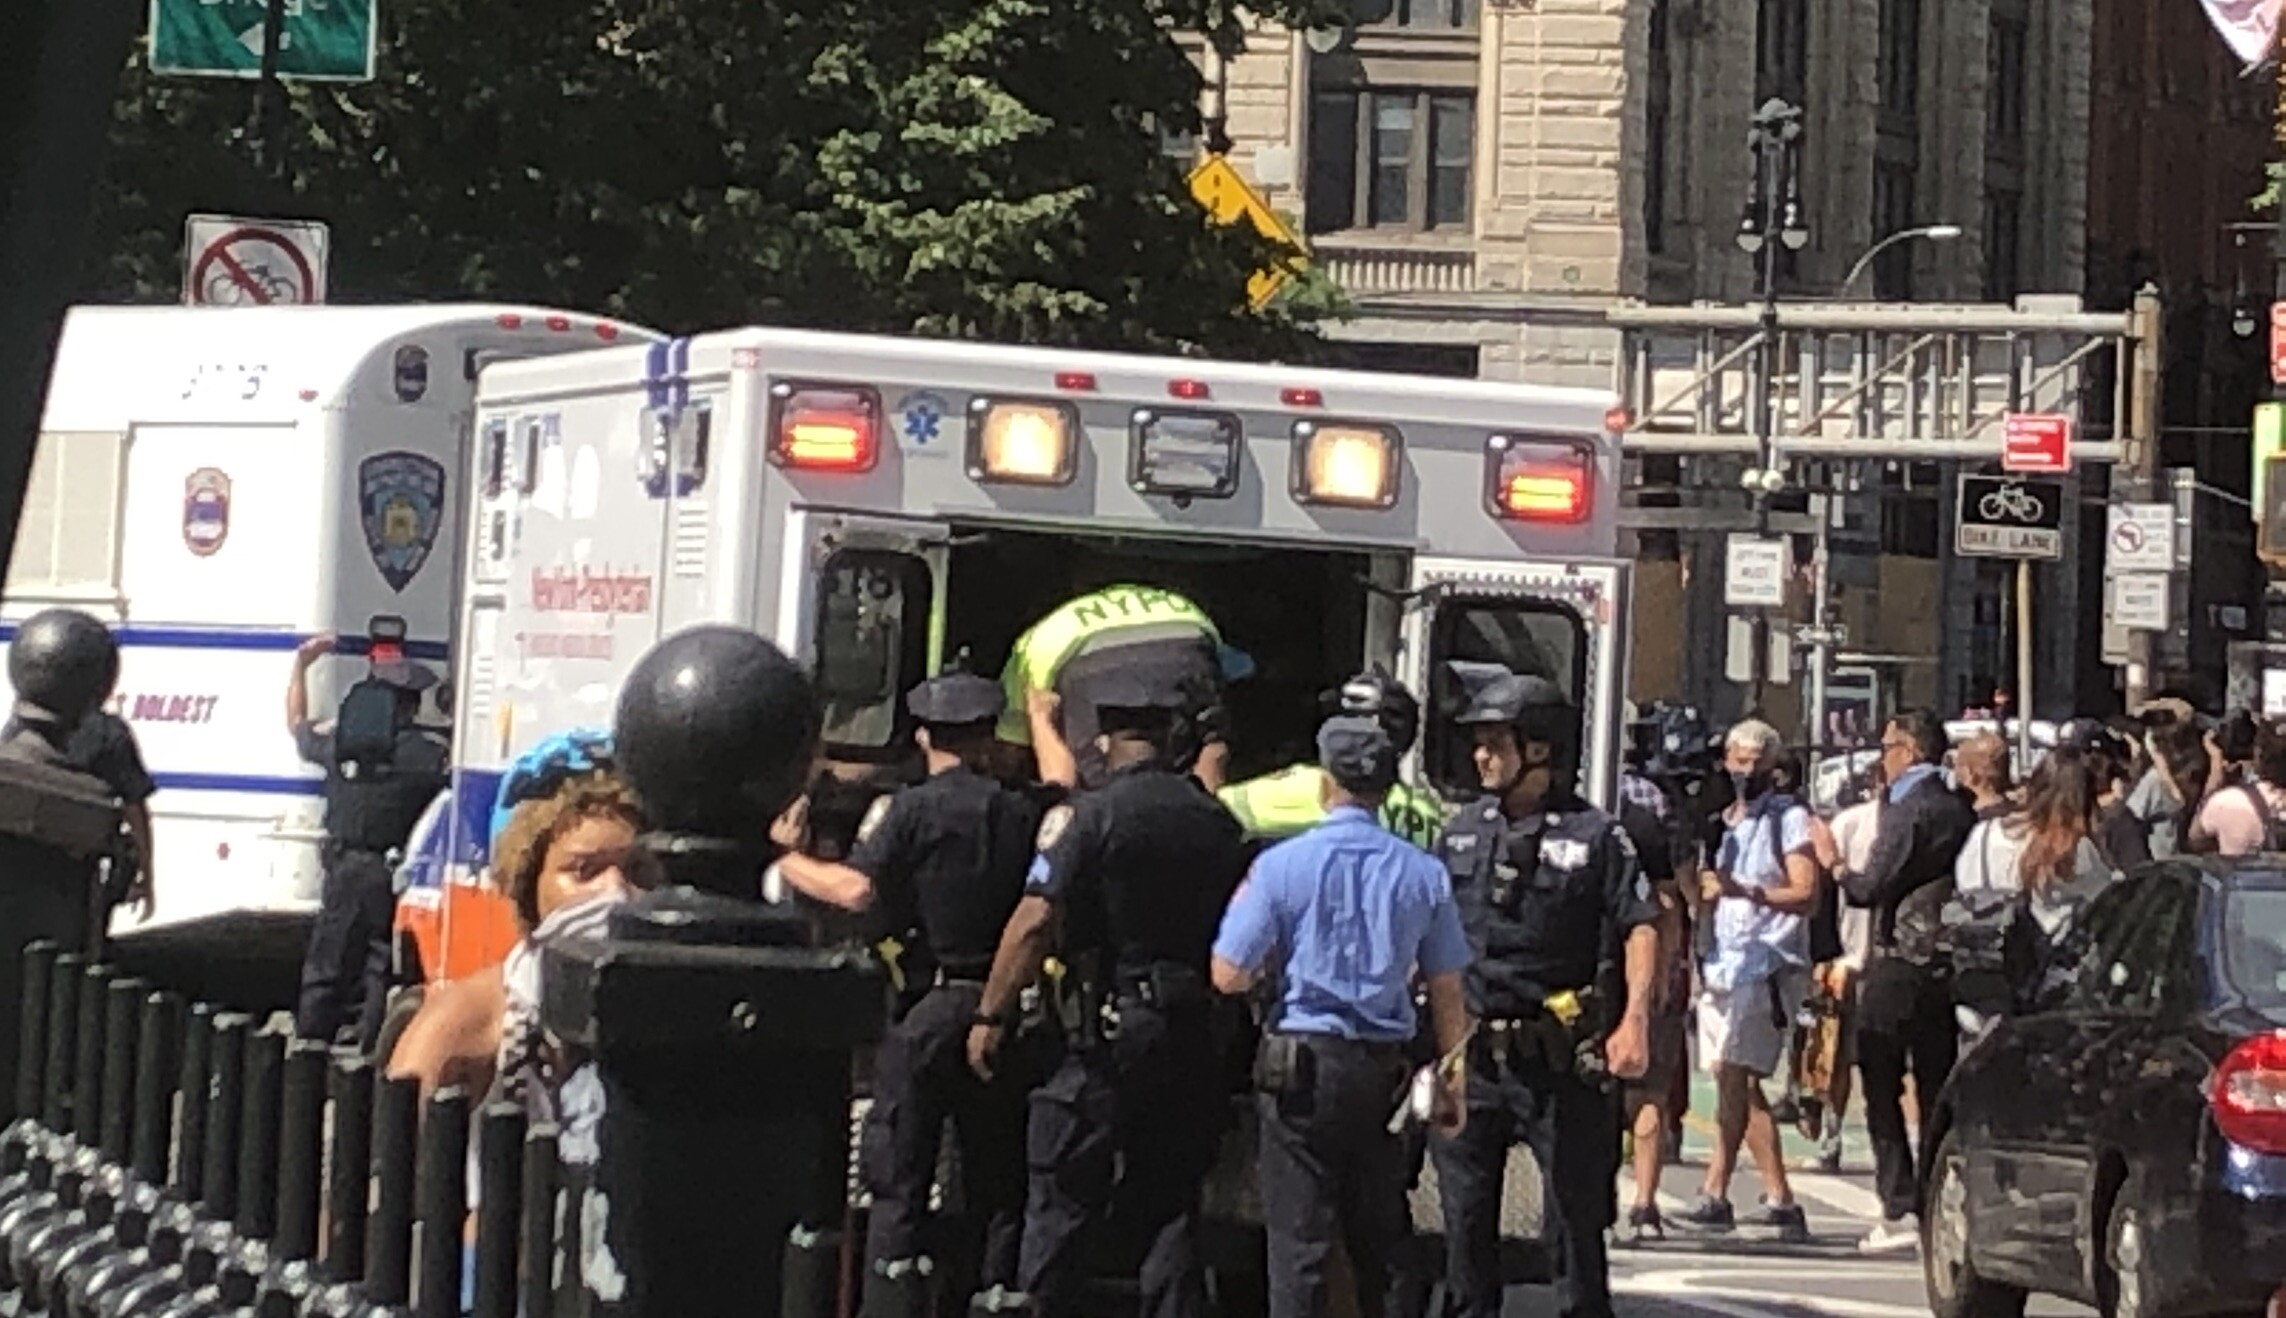 An injured New York Police Department officer is loaded into an emergency vehicle.